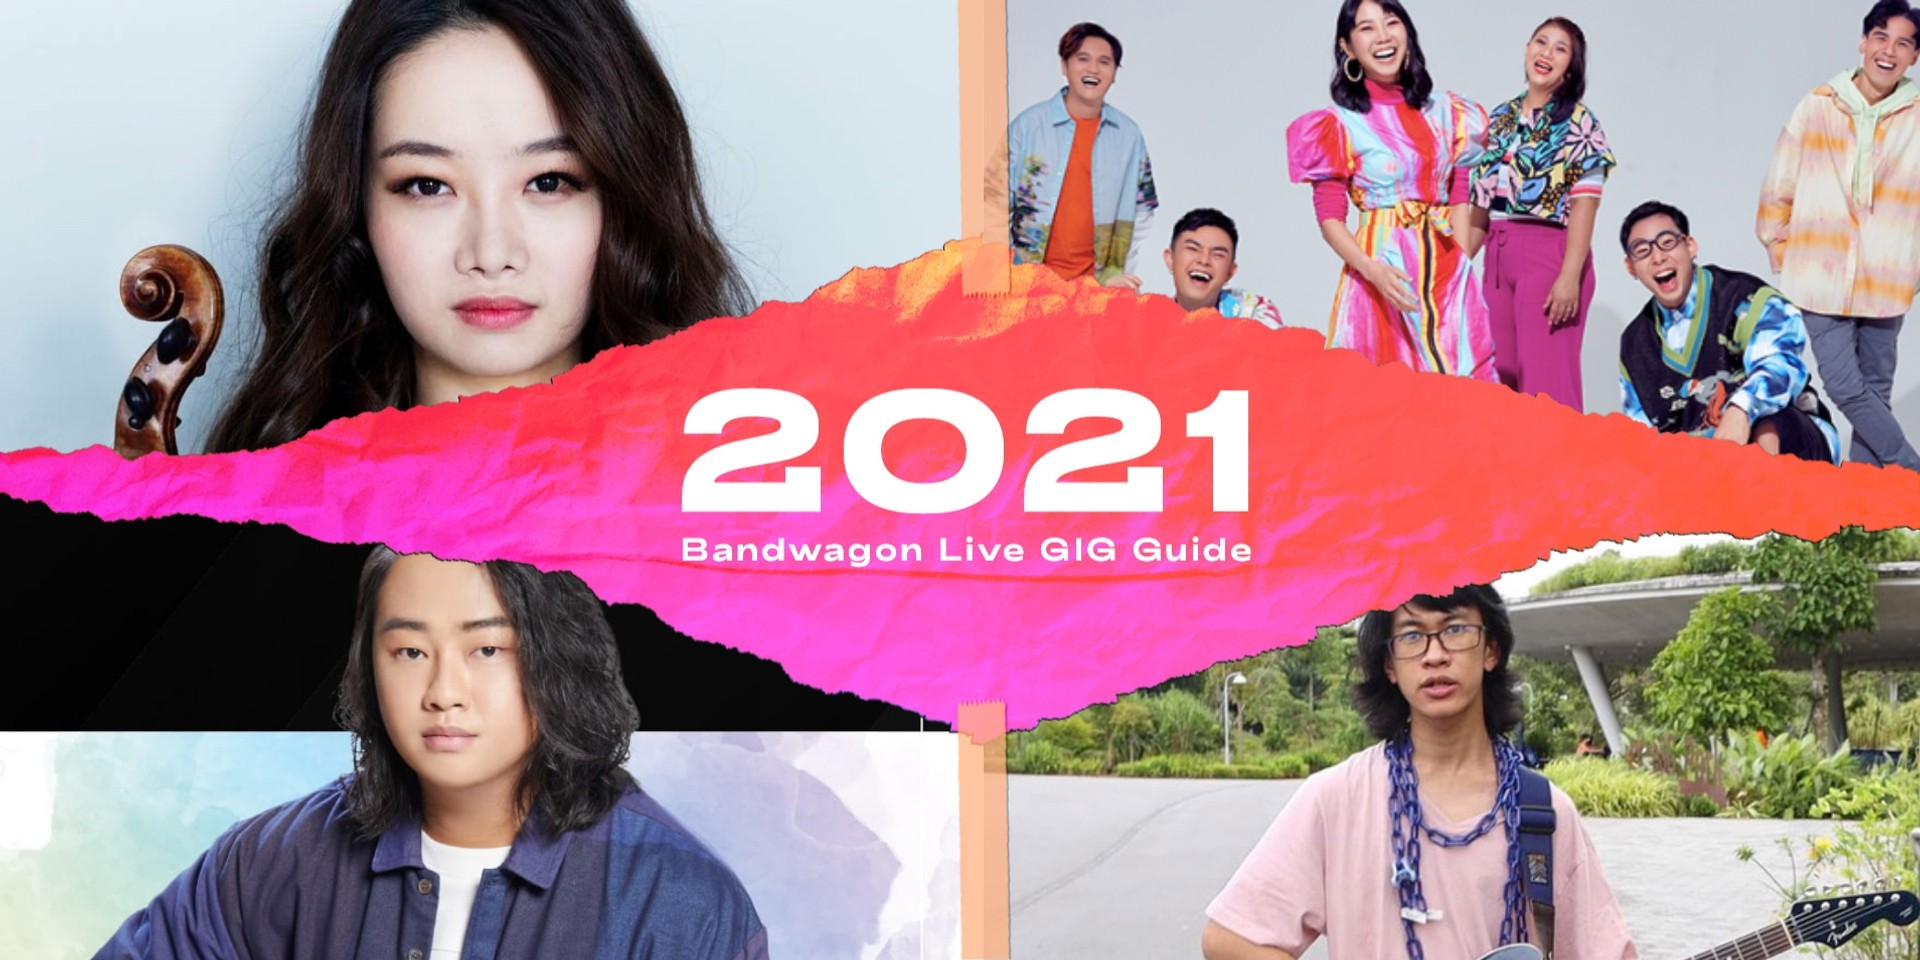 Live gigs and concerts to catch in Singapore in 2021 — Yuming Lai, Bomsori Kim, deførmed, MICappella and more